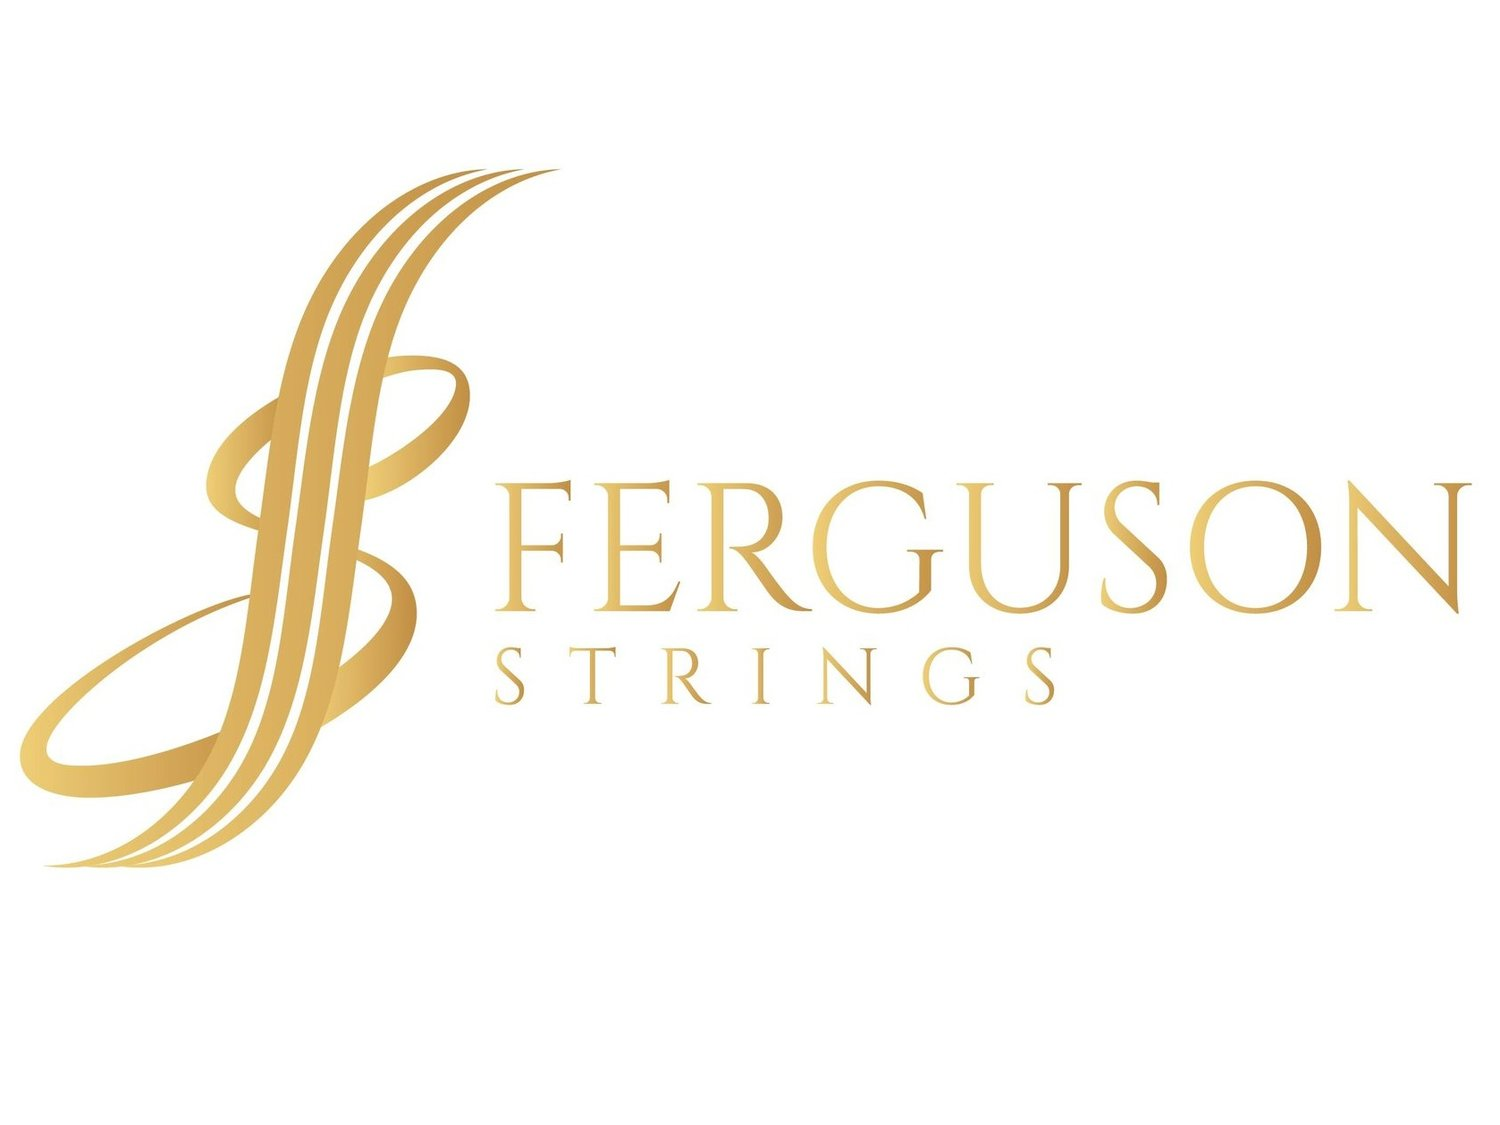 FergusonStrings.com.au: Melbourne violin, cello and viola maker